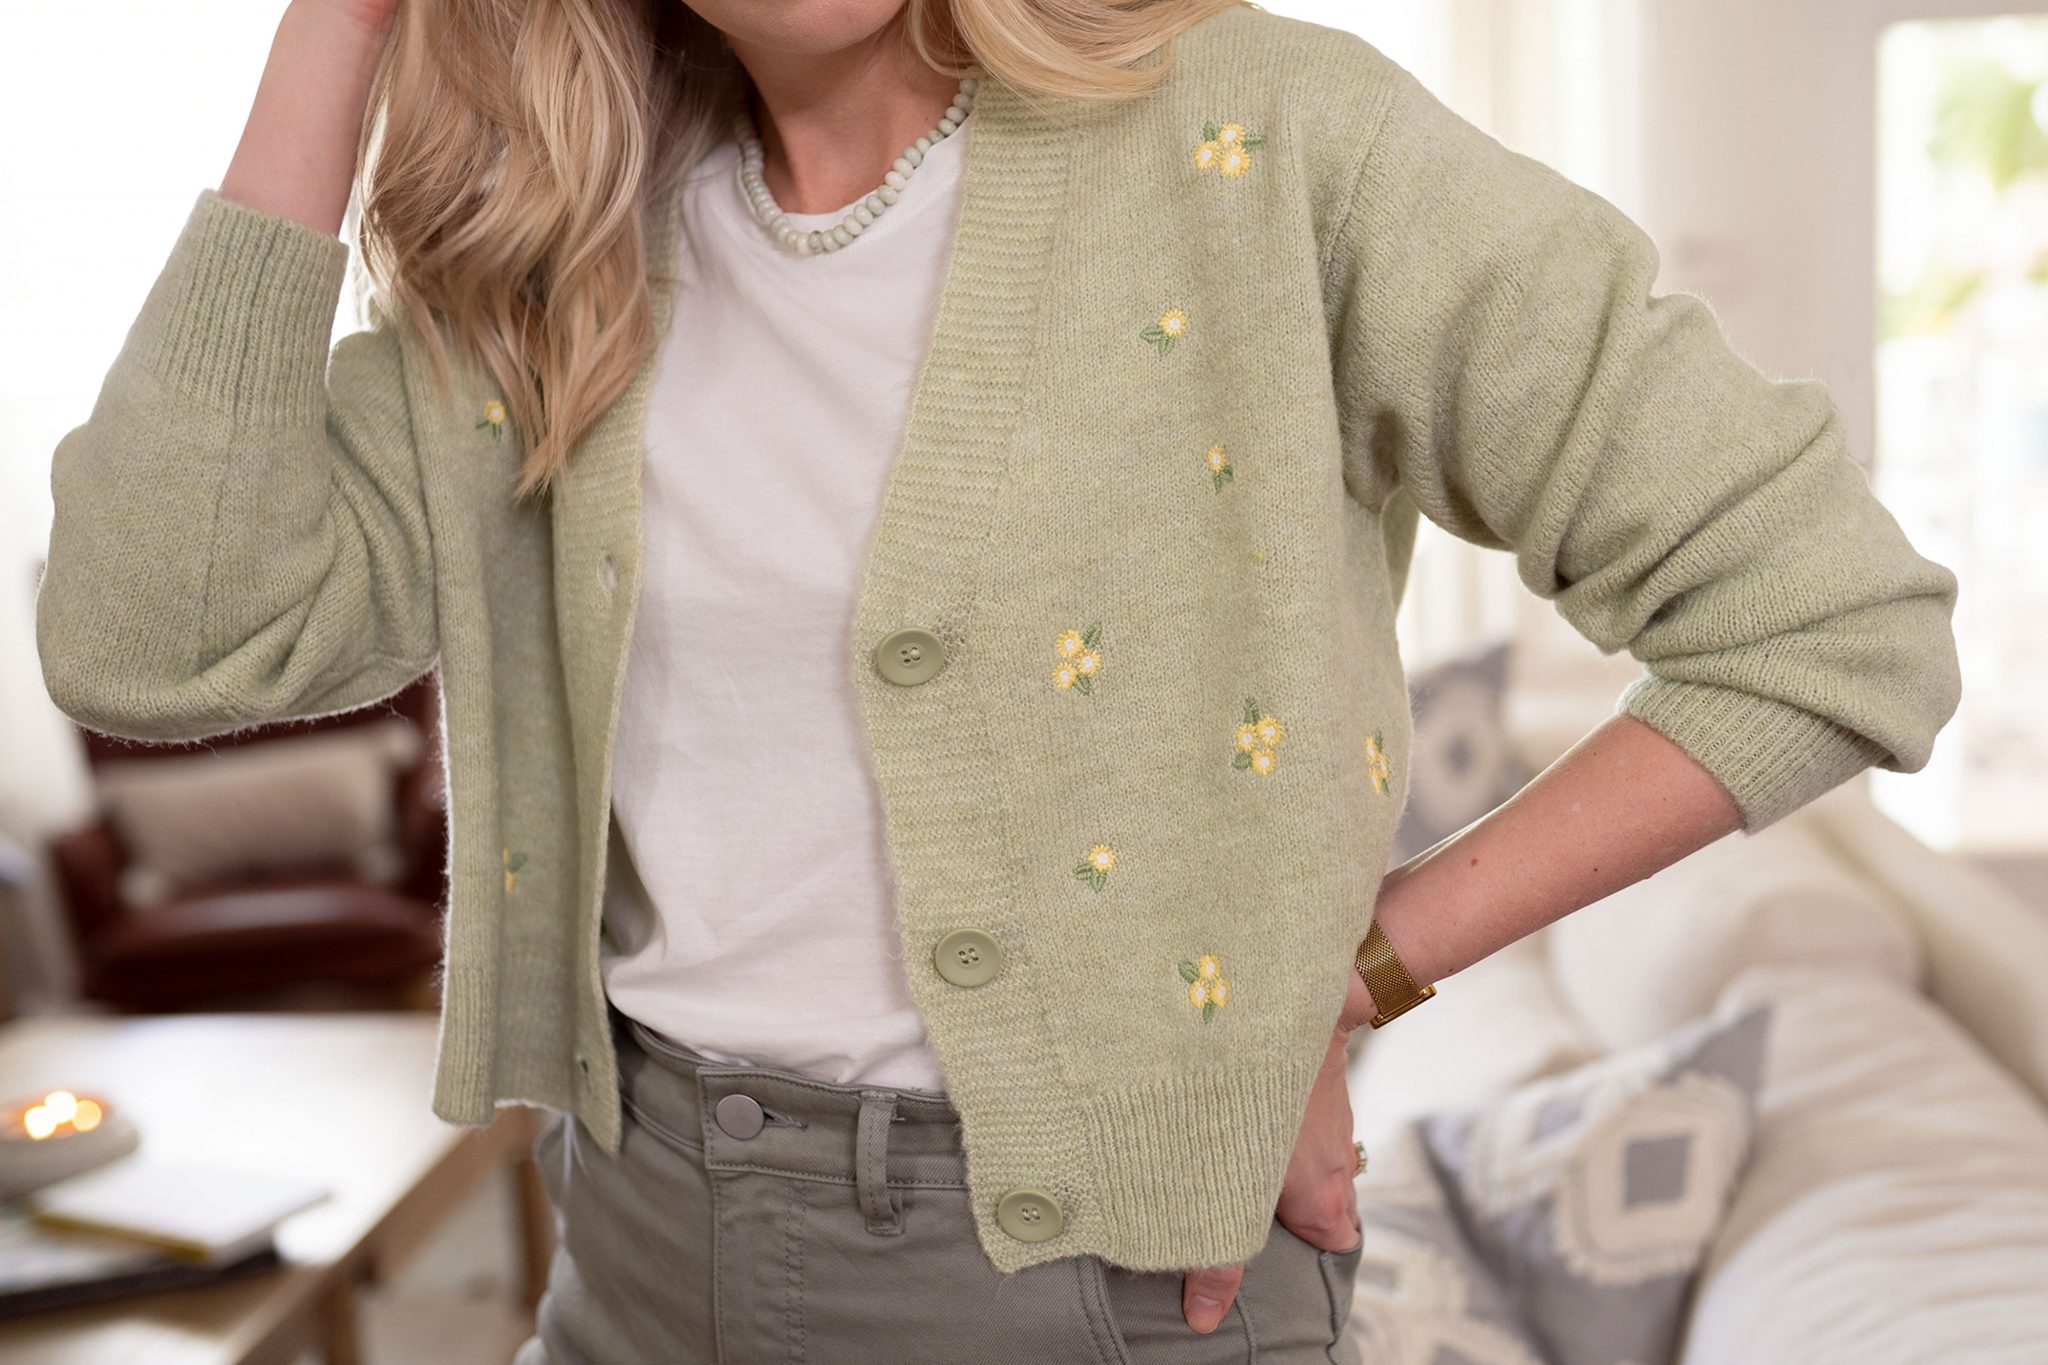 Ashley Brooke wearing this season's daisy floral cardigan sweater